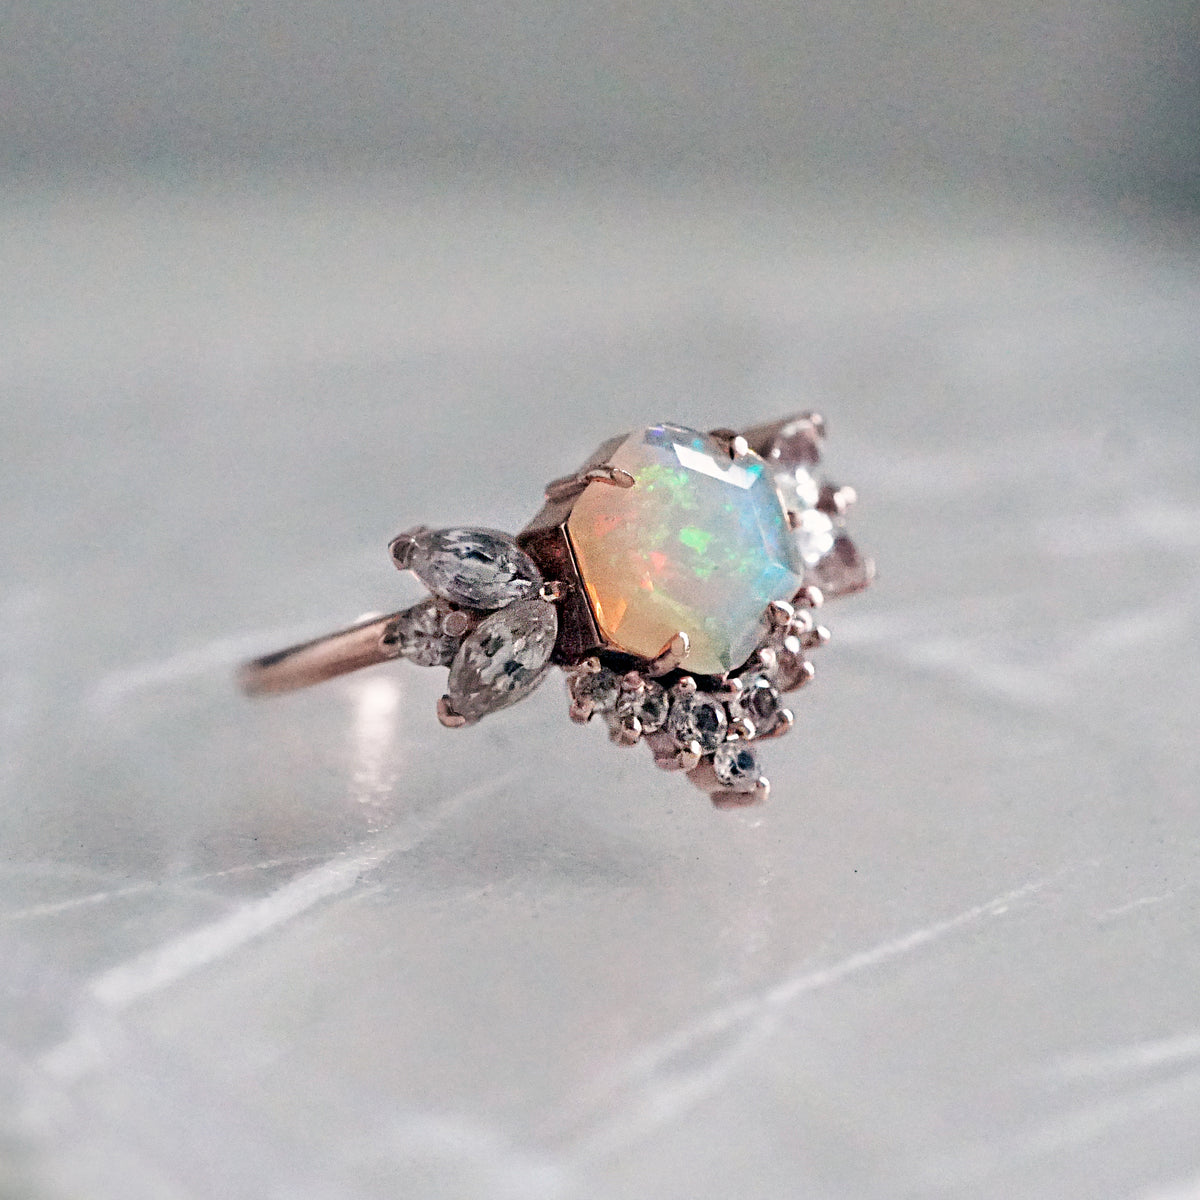 Hexagon Opal Butterfly Diamond Ring - Tippy Taste Jewelry